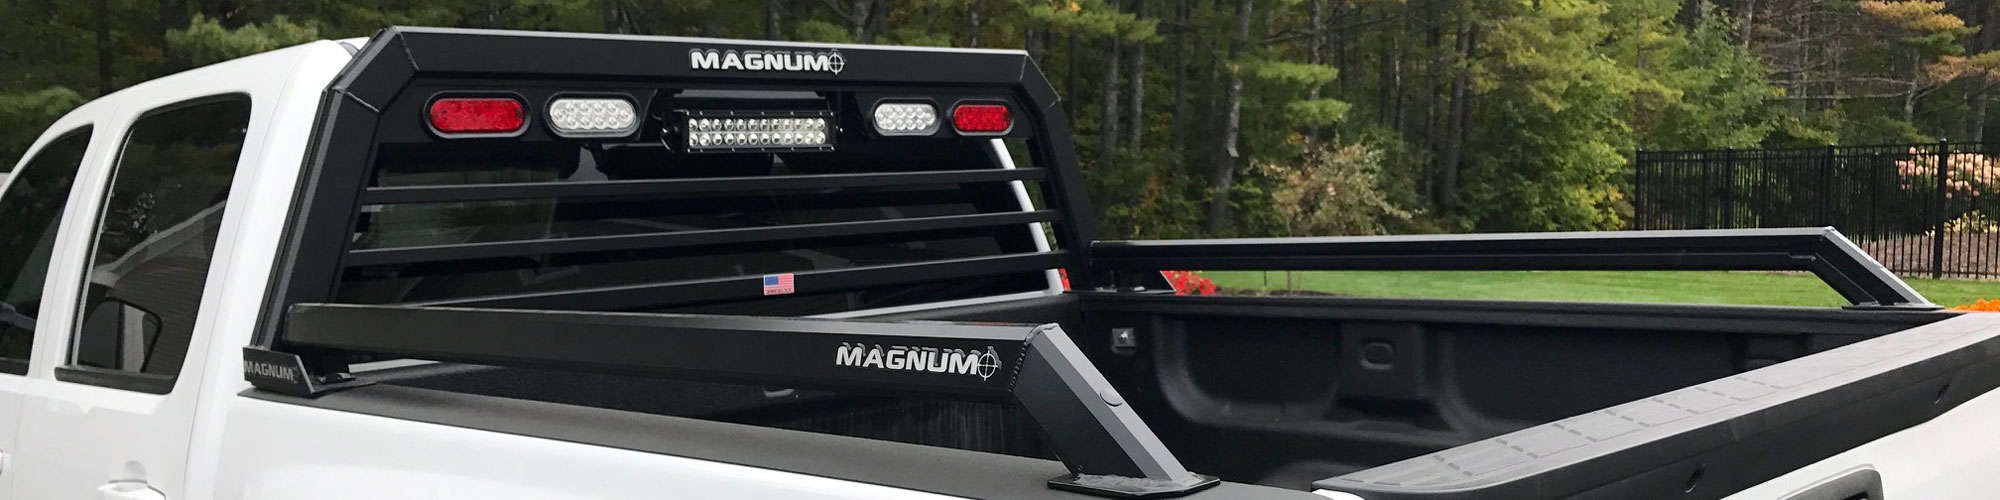 Headache Racks Truck Cab Protectos Led Light Bars Magnum Chevy Rack Always Free Shipping On All Products For Customers In The Contiguous United States